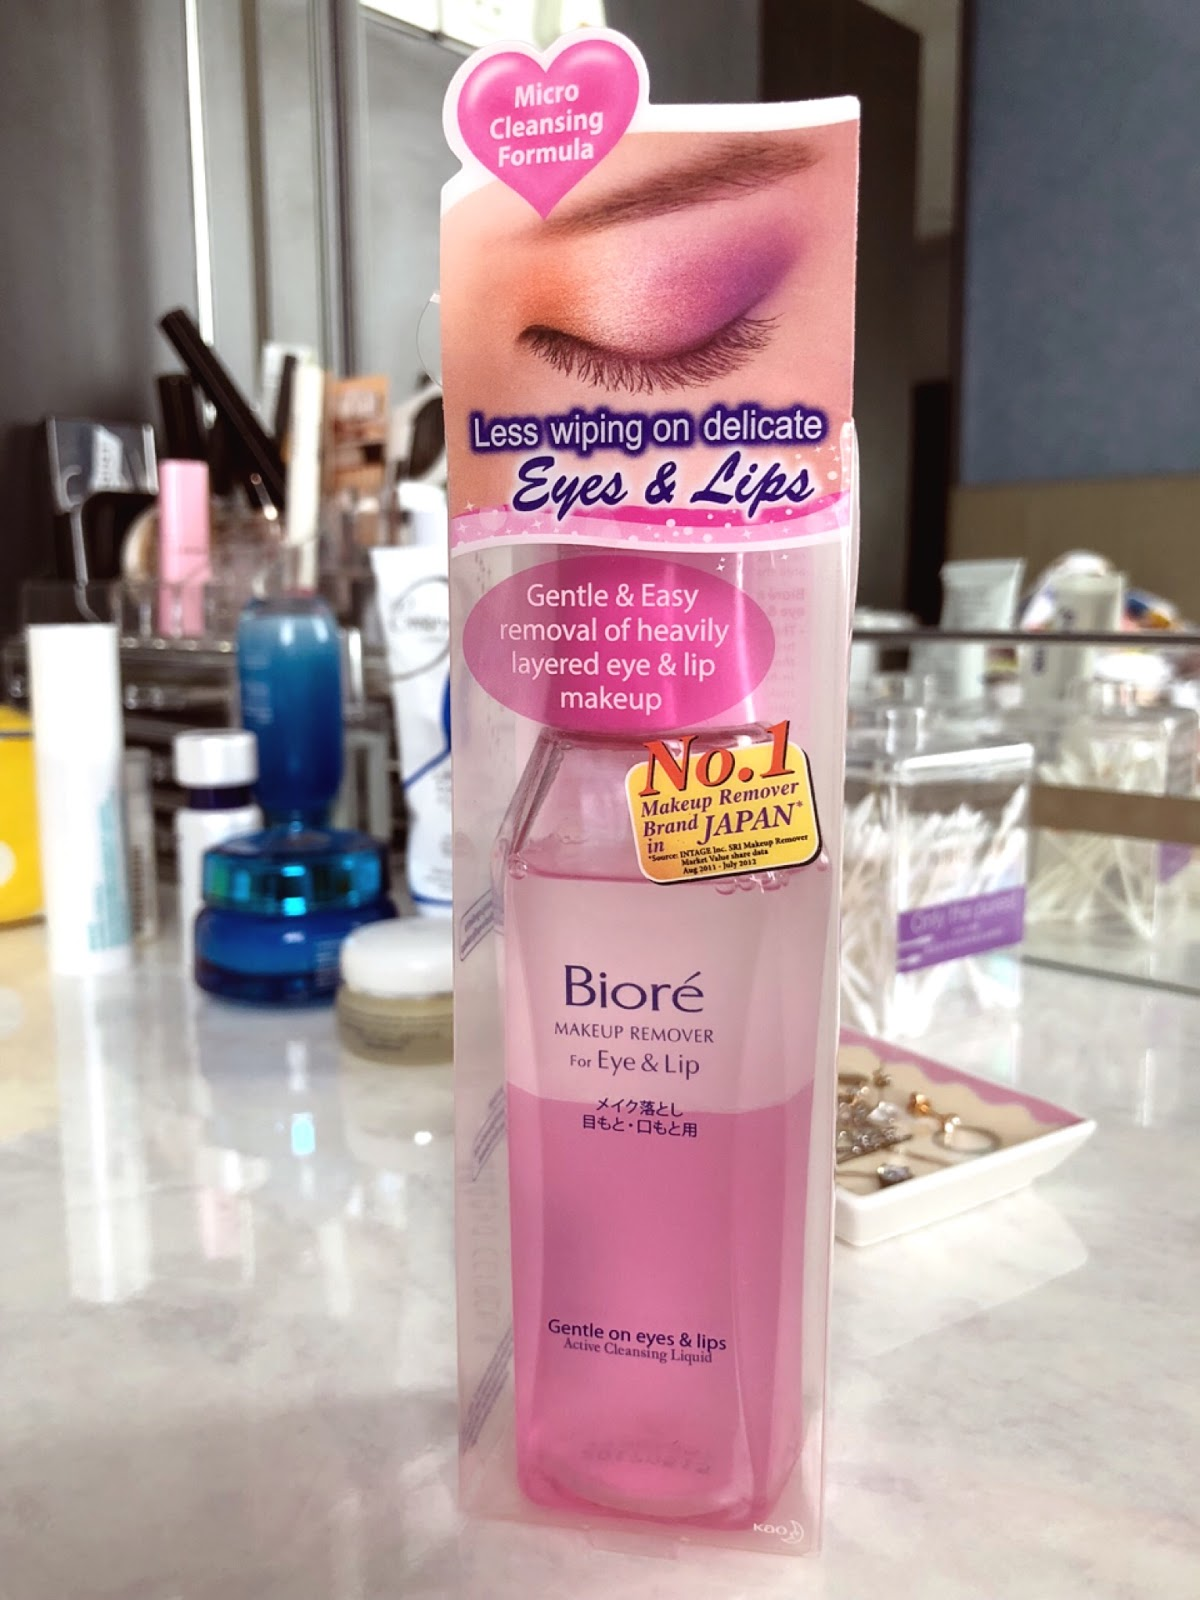 REVIEW: Biore Eye & Lip Makeup Remover